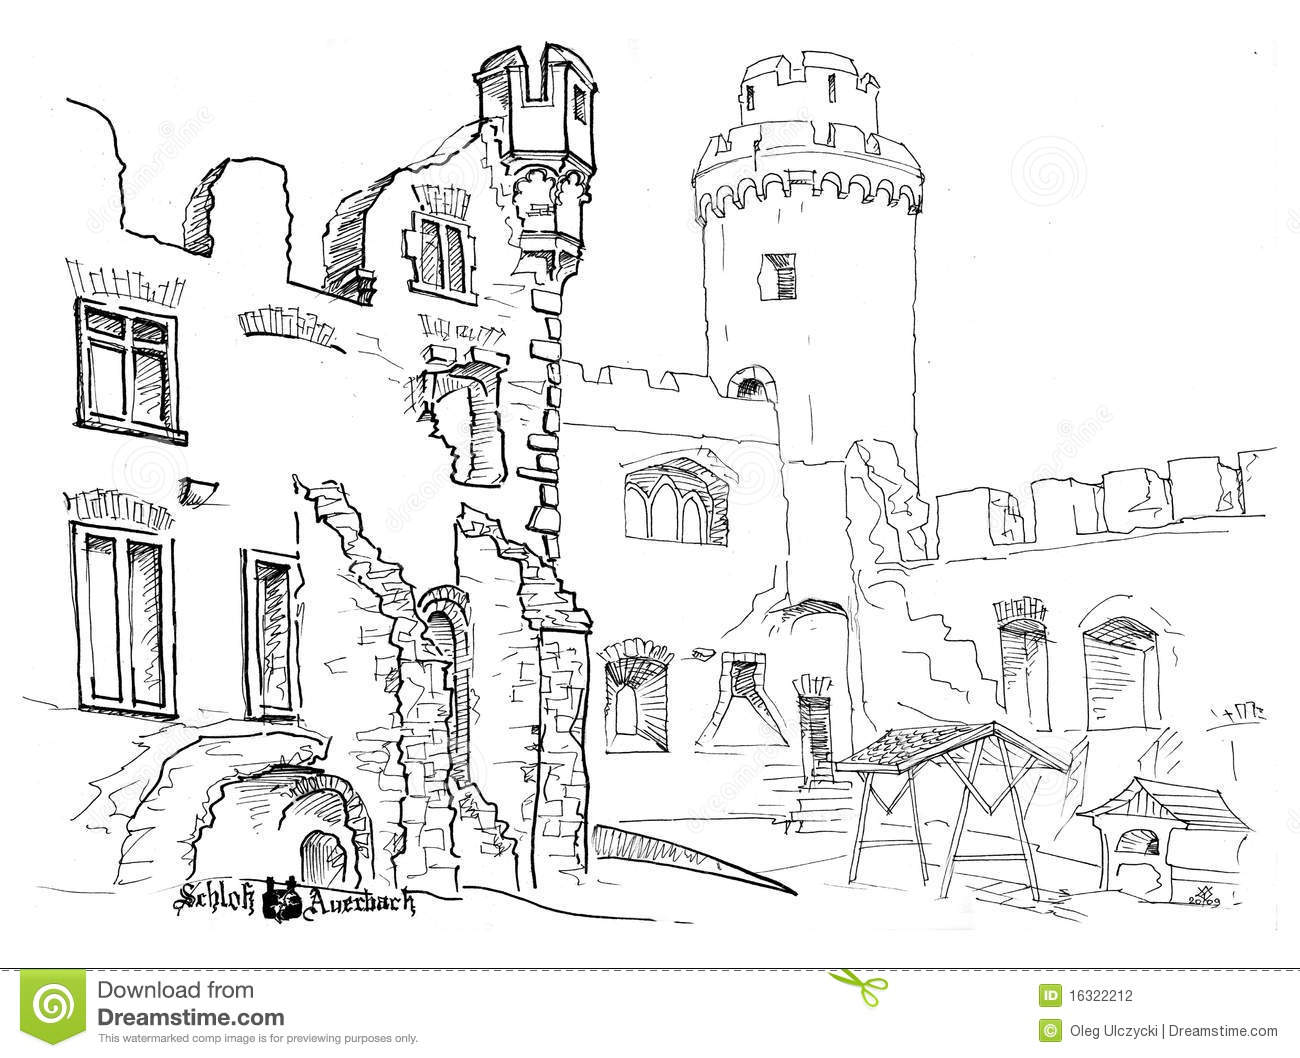 New Technology Ploughed Its Way To Prosperity In Medieval Northern Europe further Stock Photography Inner Courtyard Castle Image16322212 together with Middle Ages Timeline 500 1500 besides 79420 catapult also Vector Floral Ornaments Graphic Design. on medieval ages technology